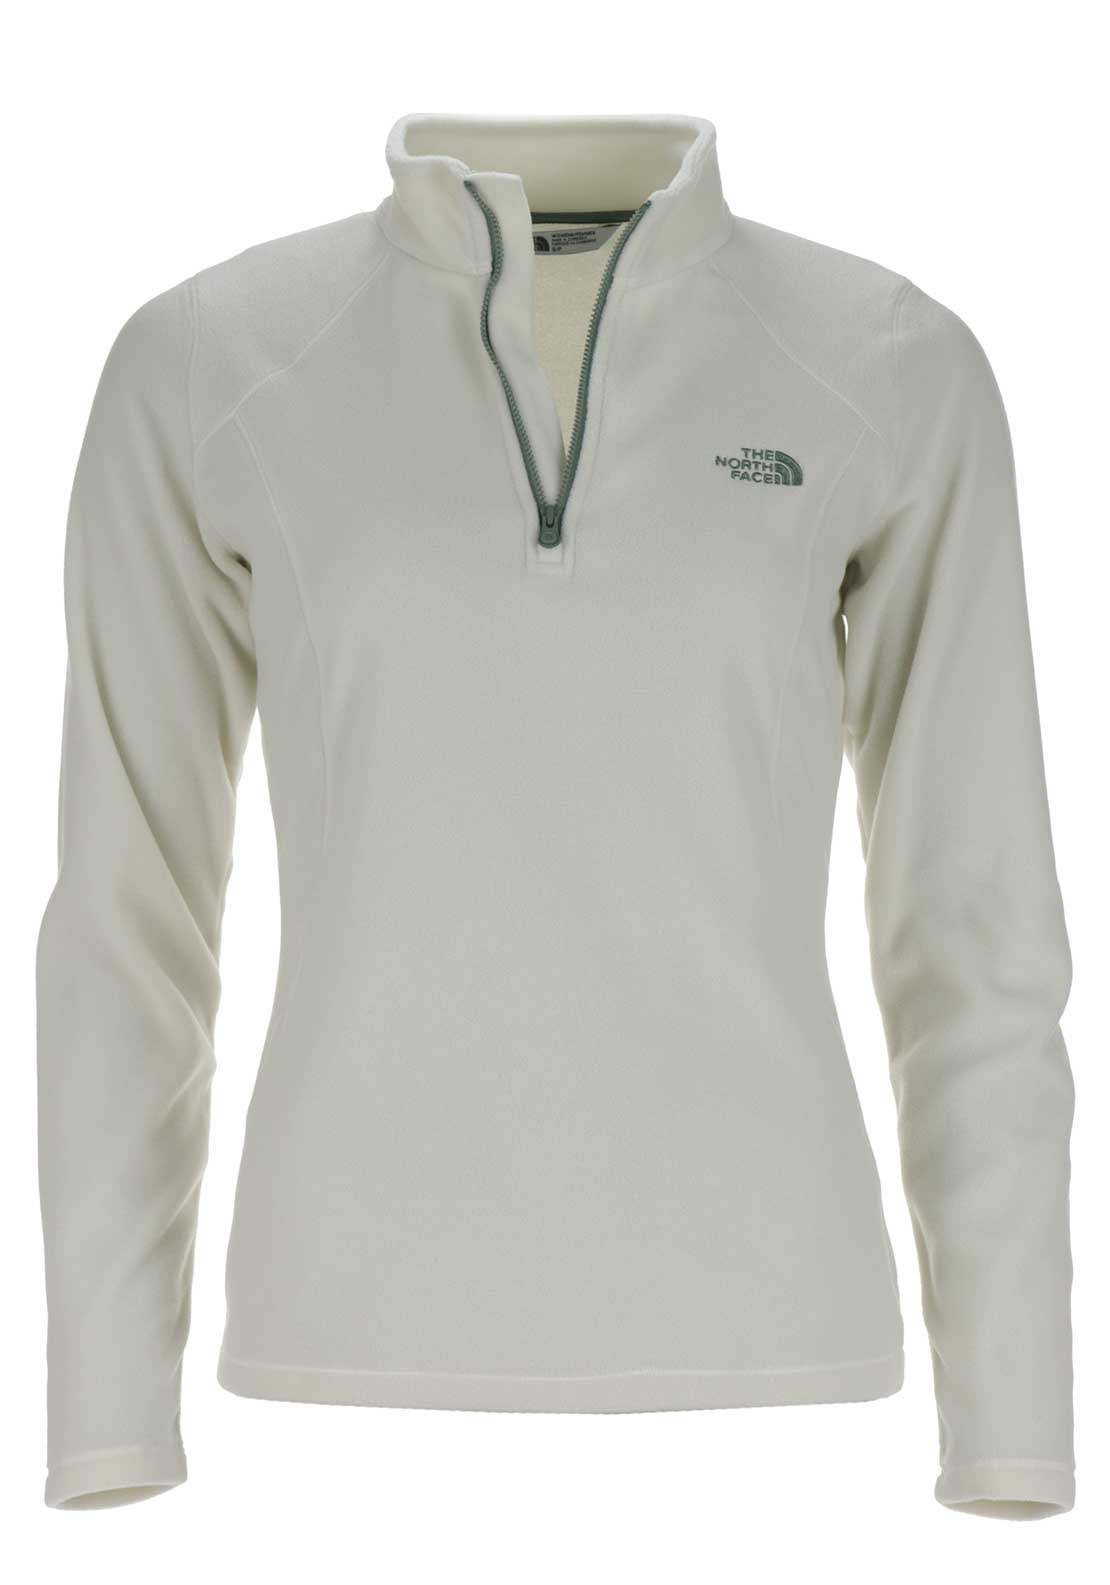 The North Face Womens 100 Glacier Half Zip Fleece, Vintage White